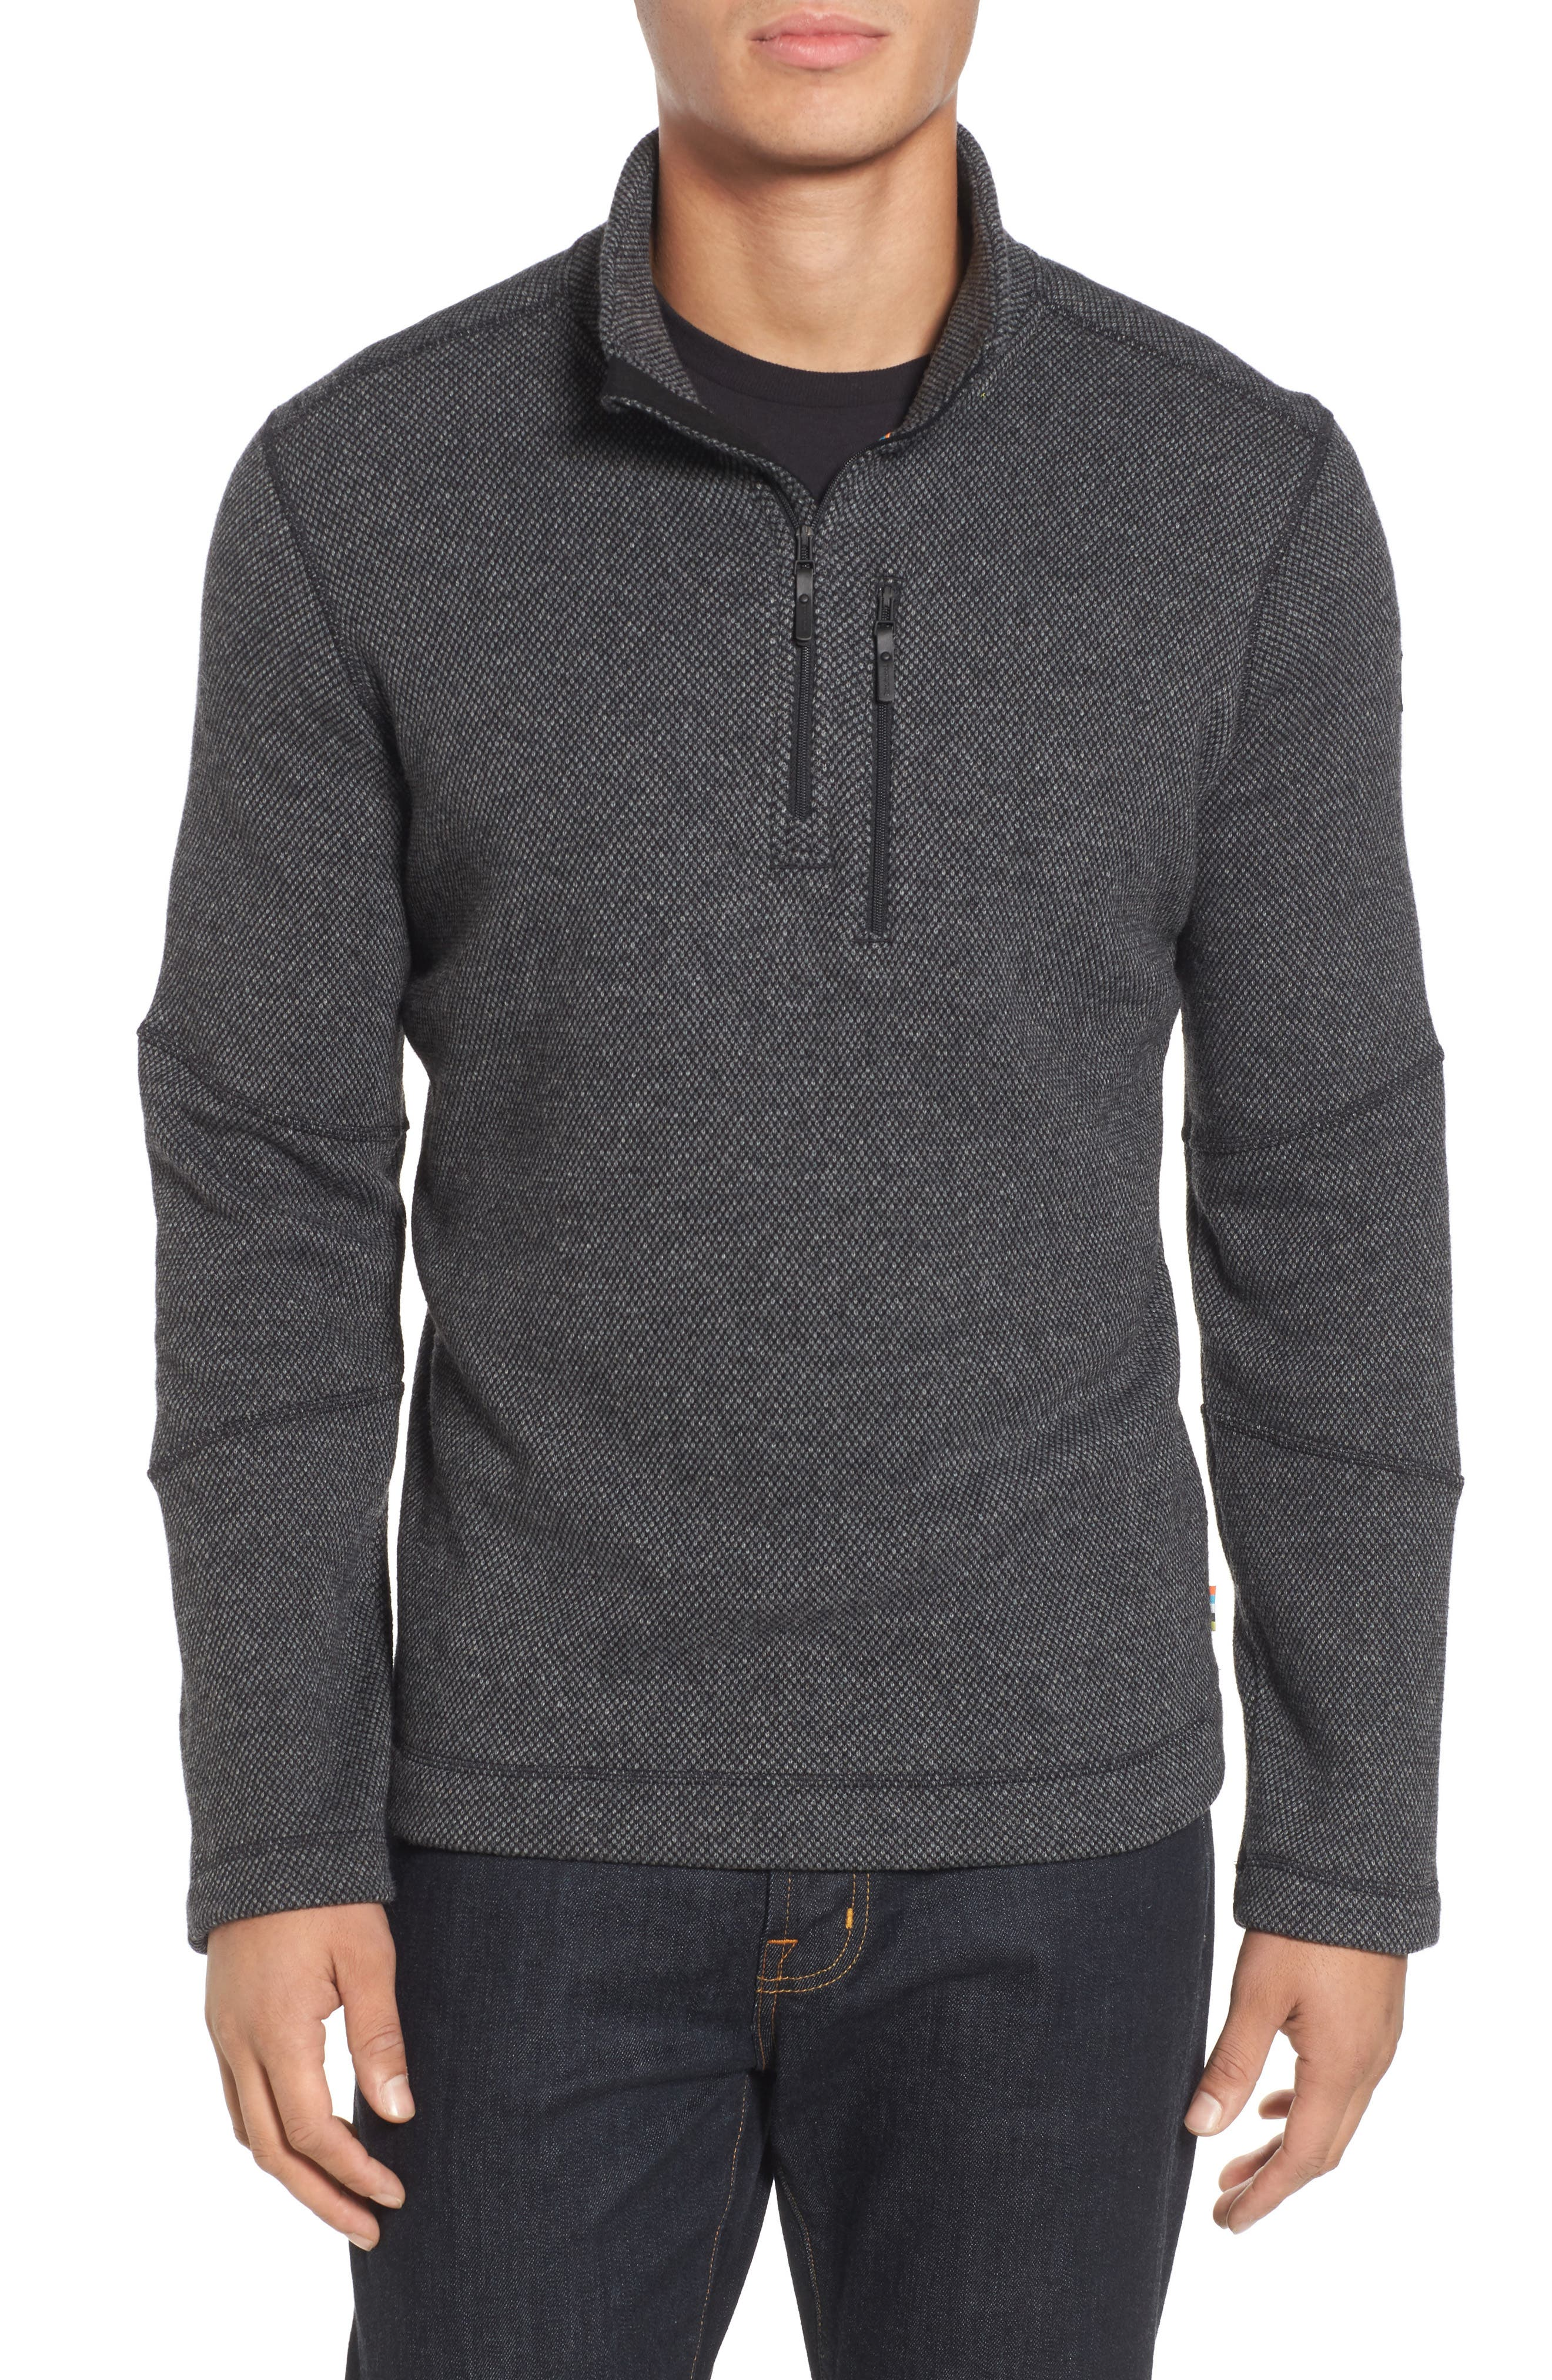 Heritage Trail Fleece Pullover,                             Main thumbnail 1, color,                             Charcoal Heather